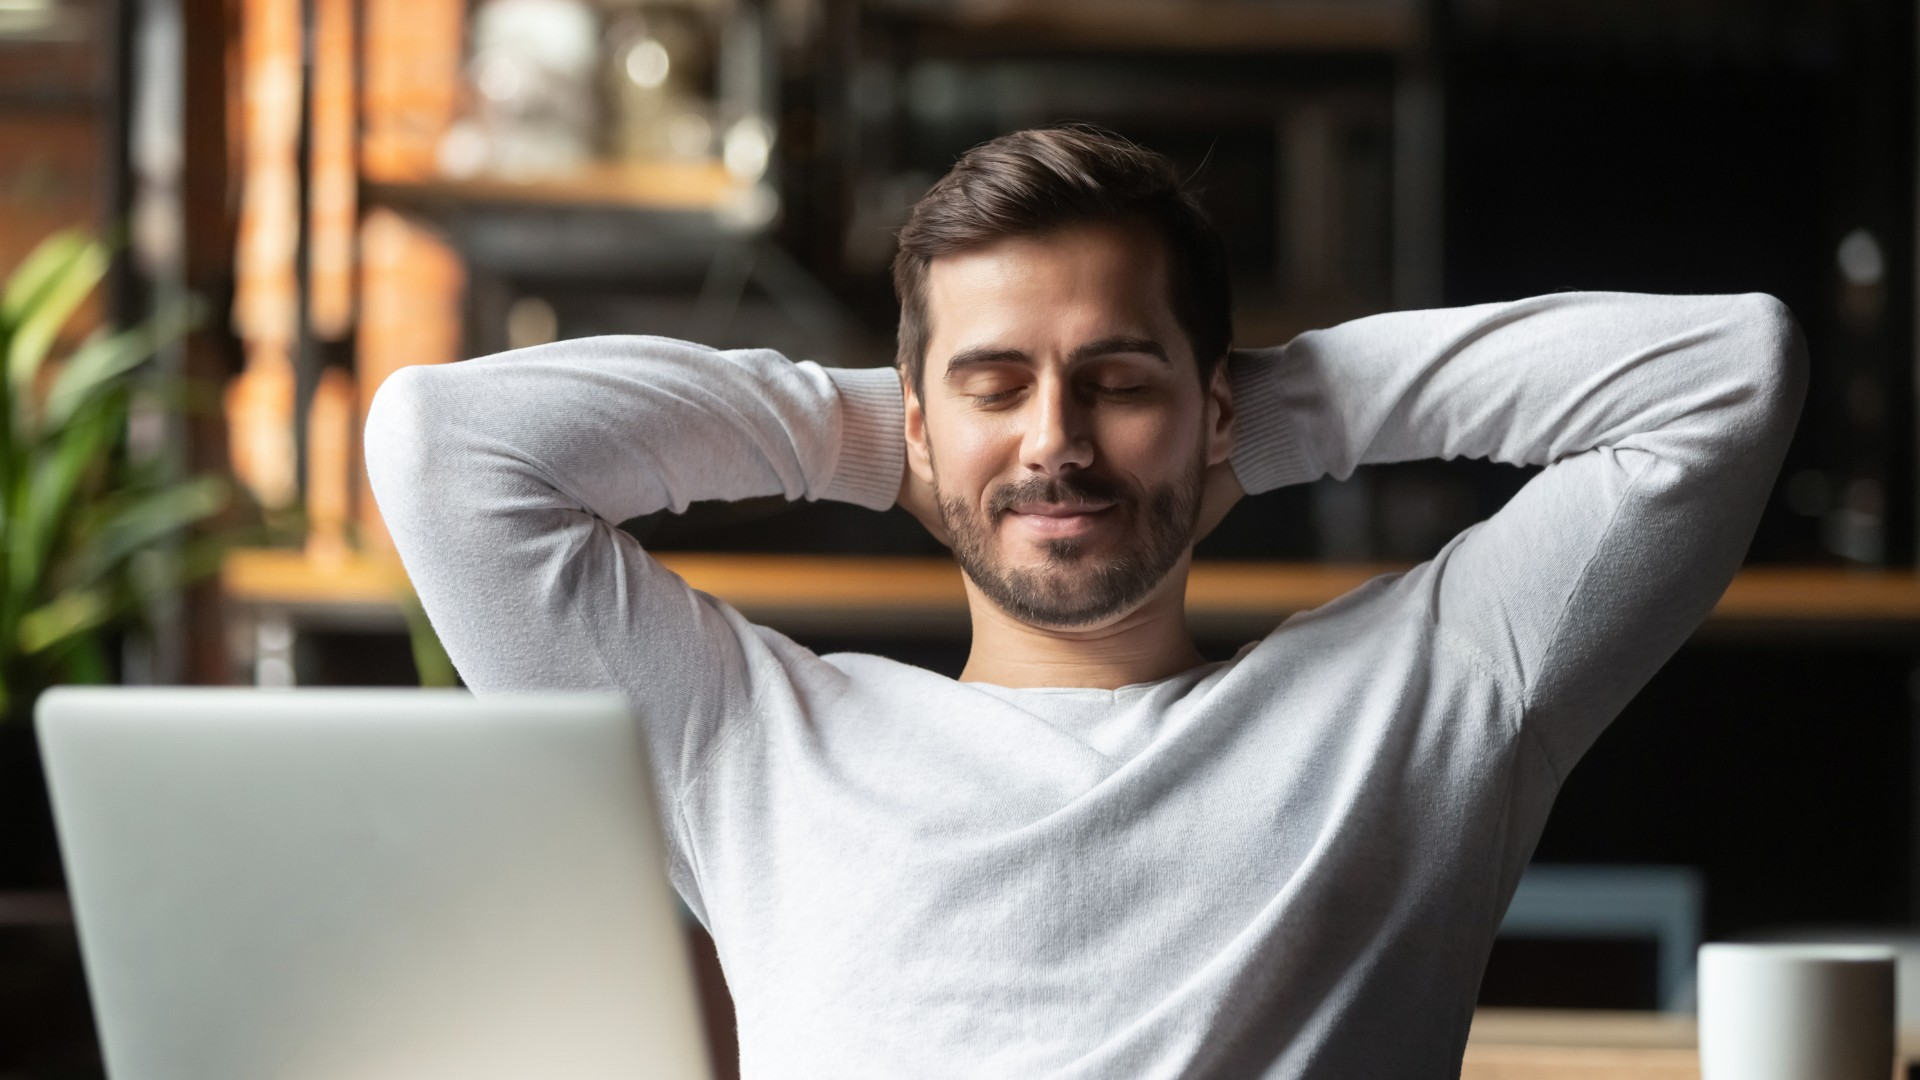 Man sitting at desk with a relaxed smile on his face